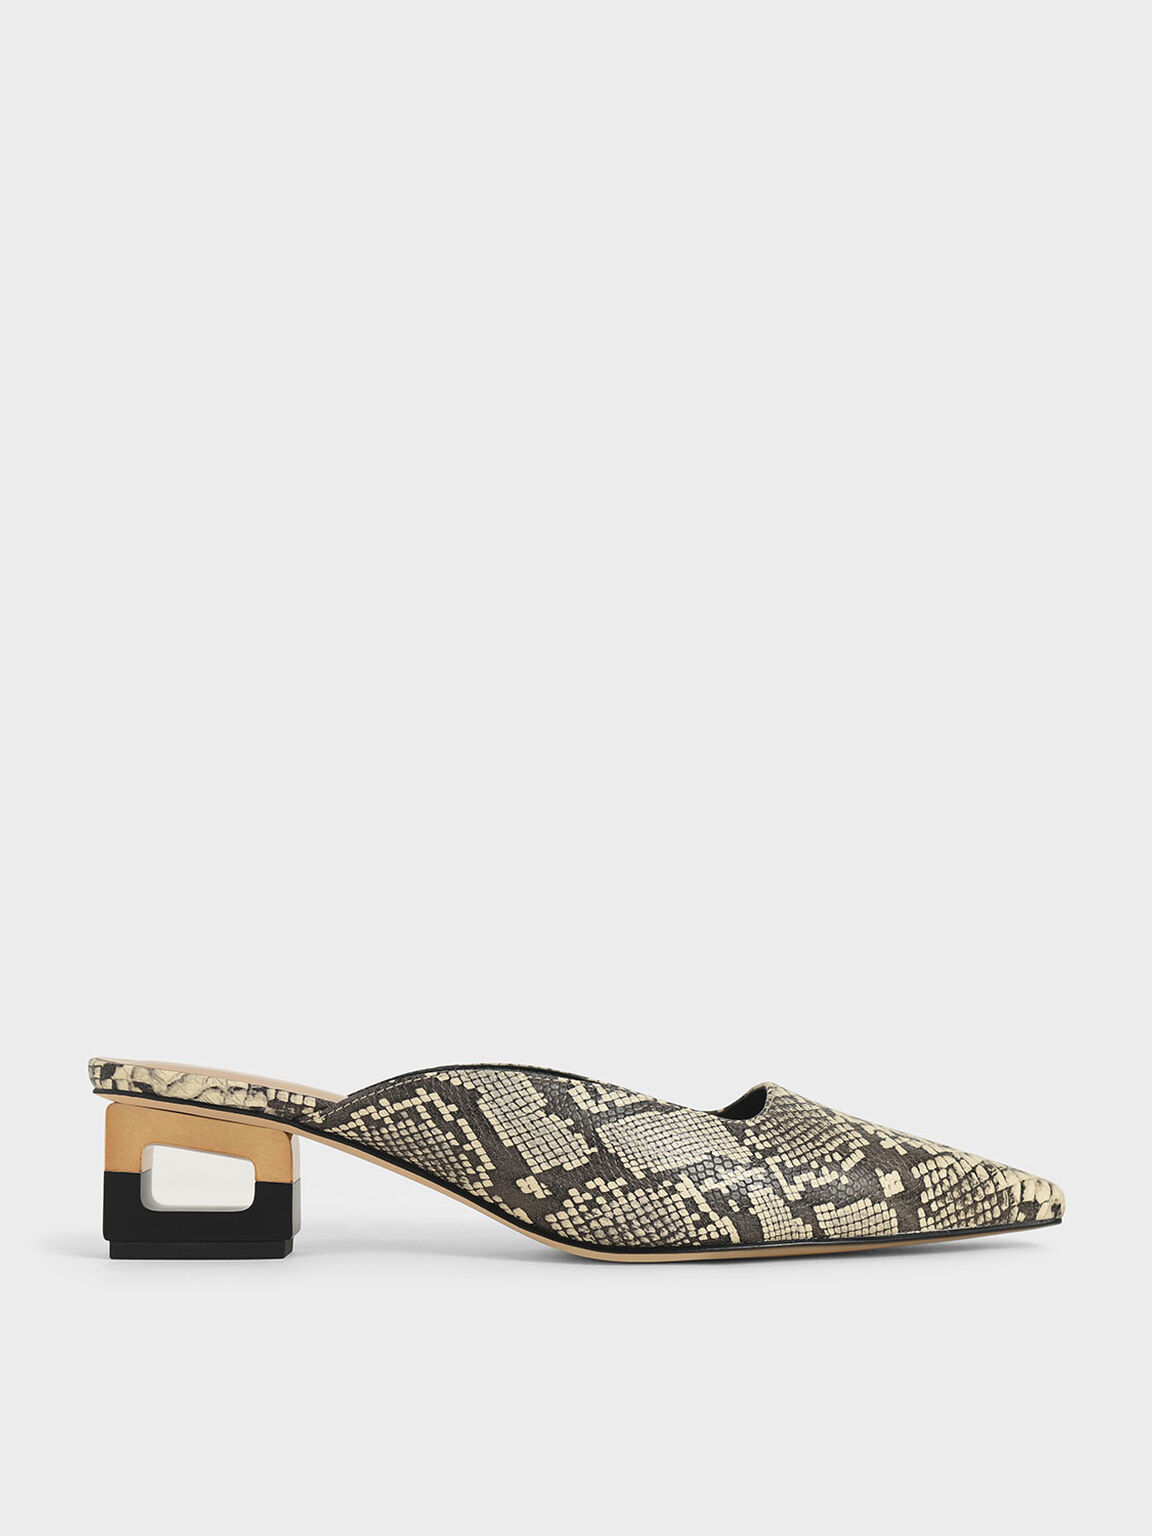 Snake Print Sculptural Chrome Heel Mules, Multi, hi-res